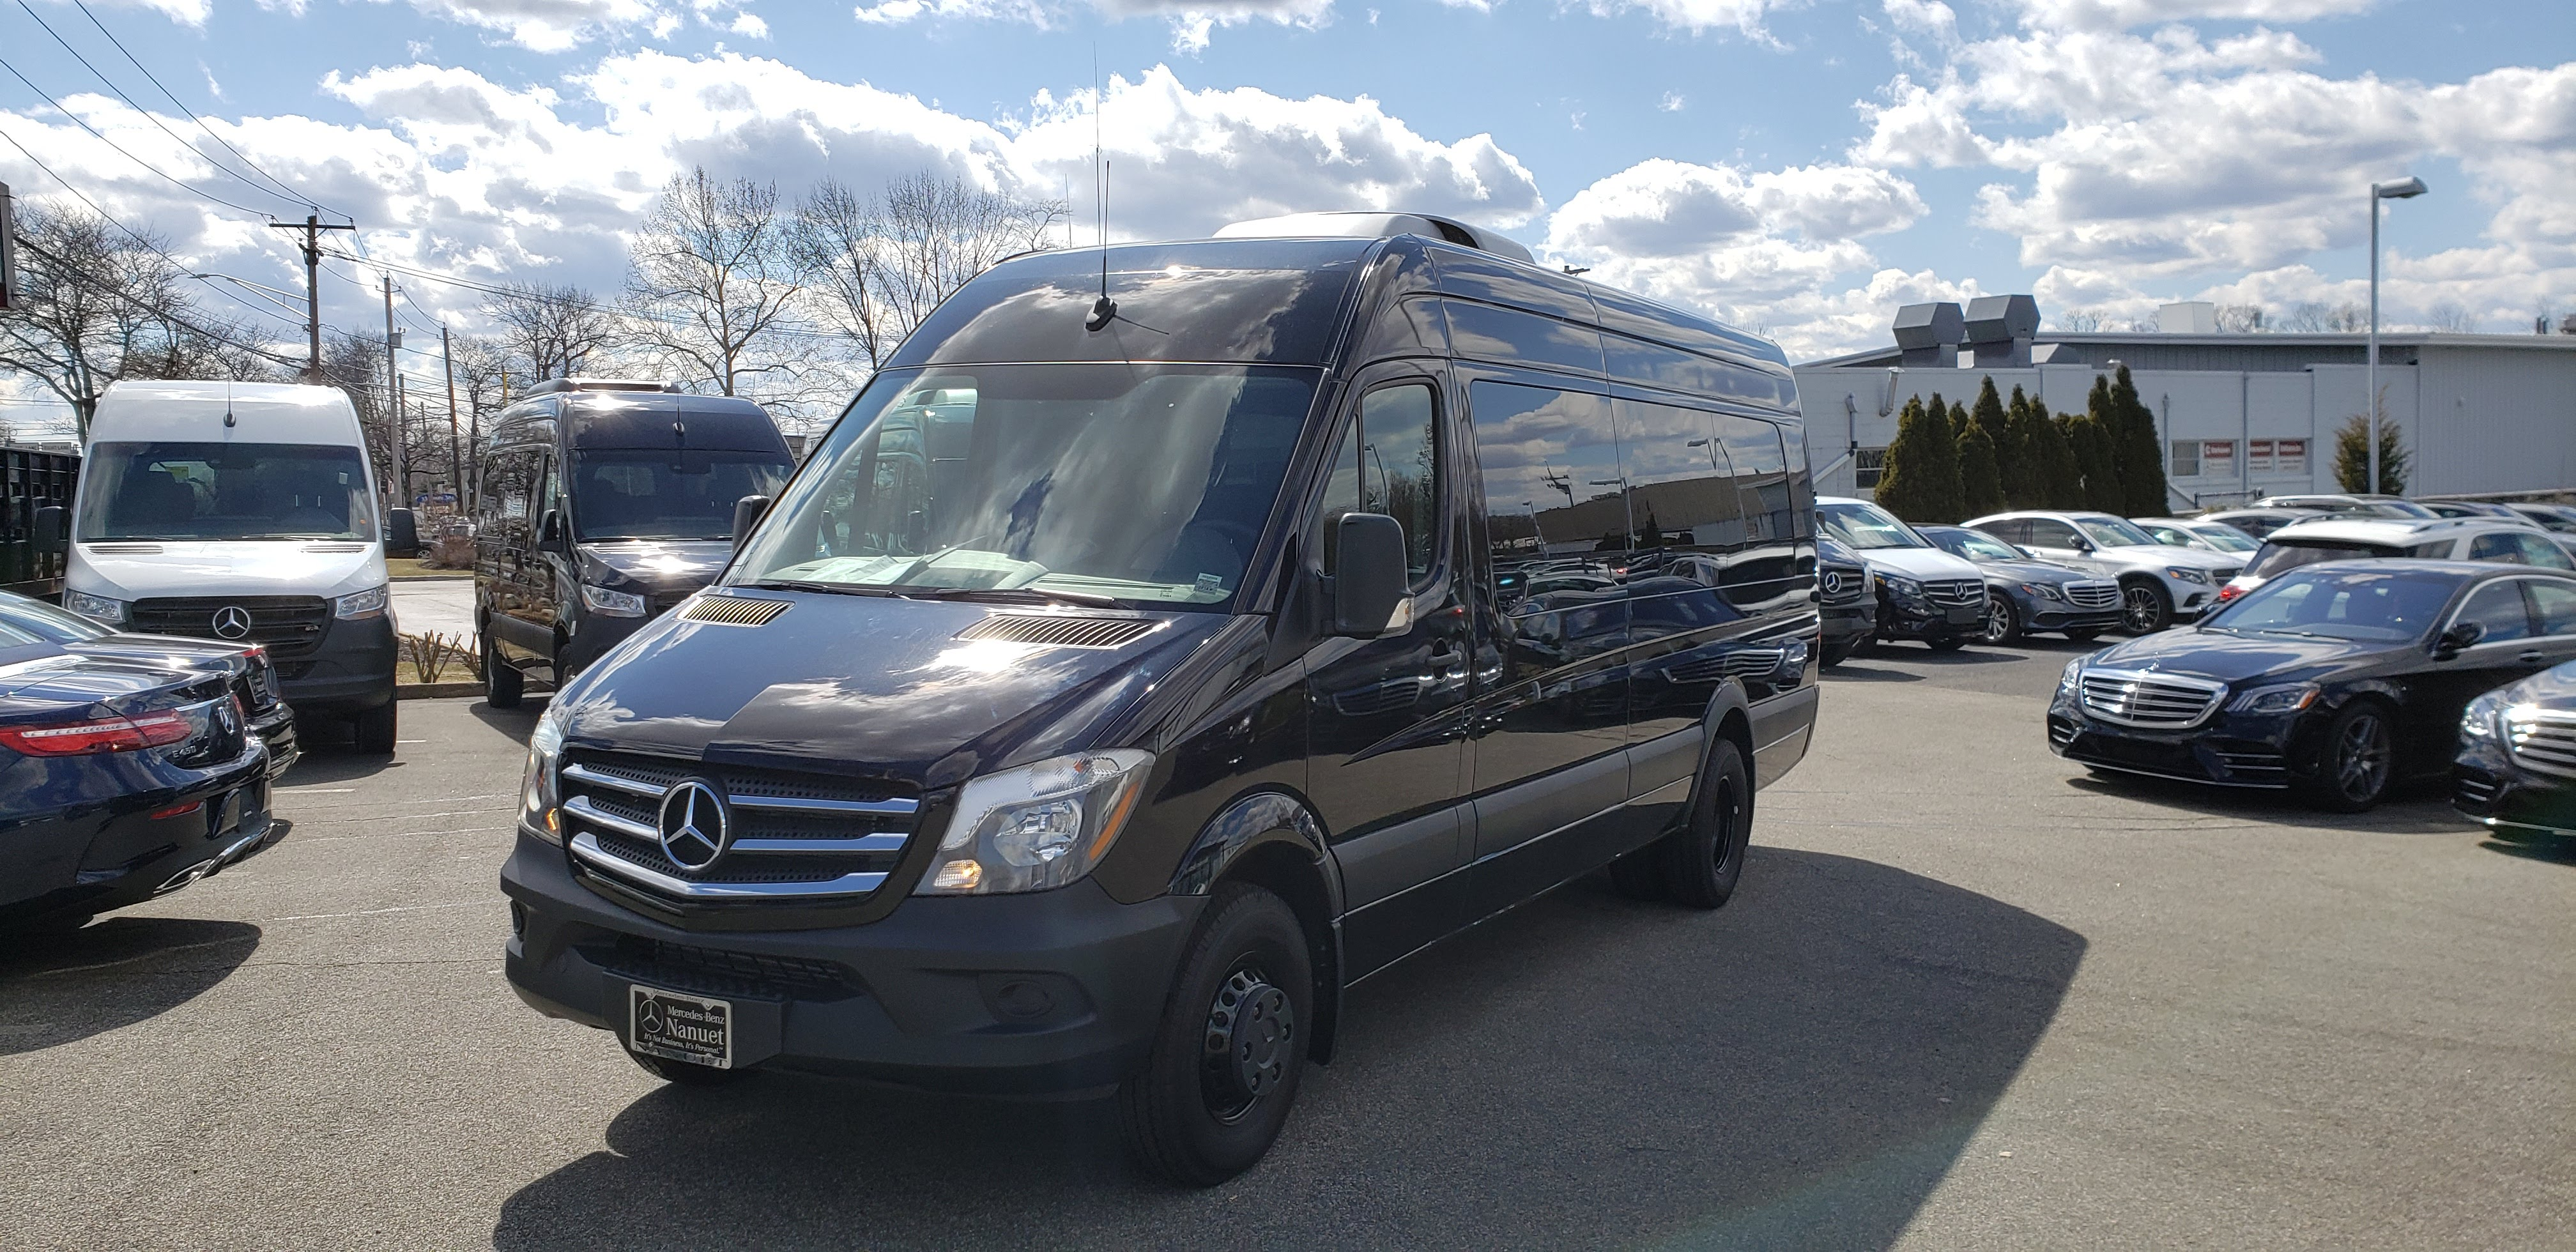 New 2017 Mercedes-Benz Sprinter 3500 Van - 15 Seat Passenger